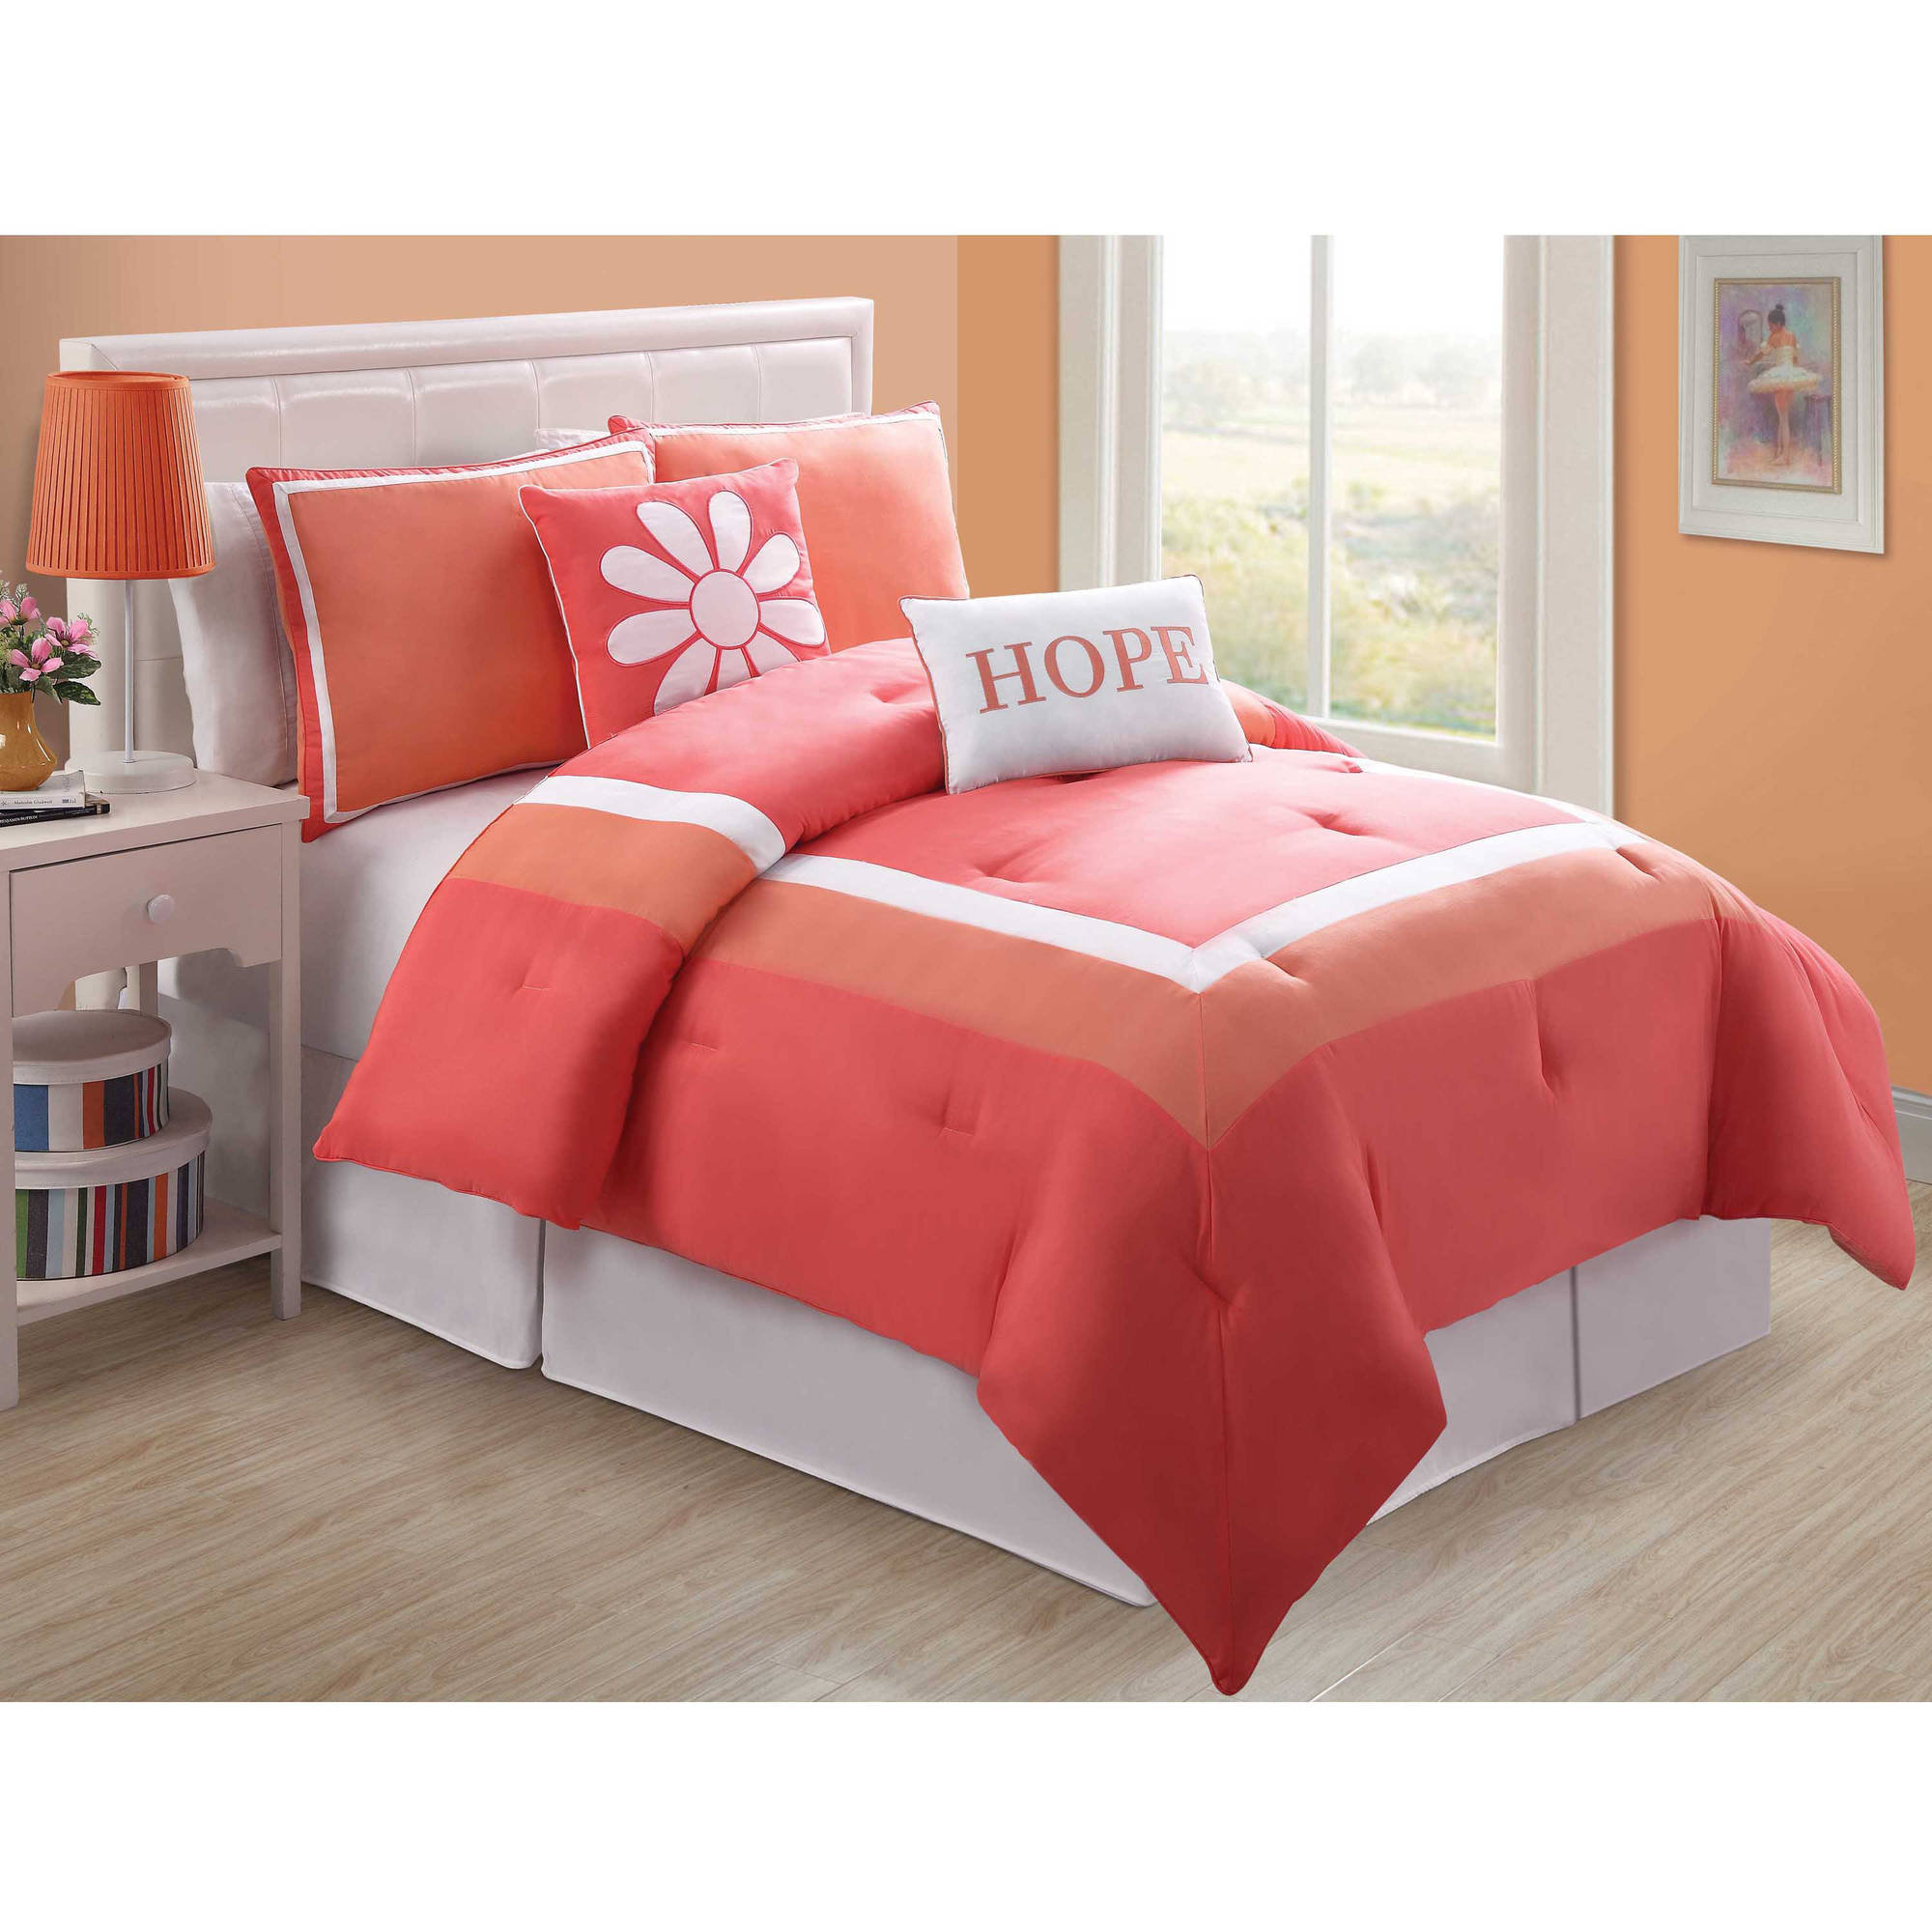 block chic pieced design duke comforter set hotel collection color piece bed in a pin home sets